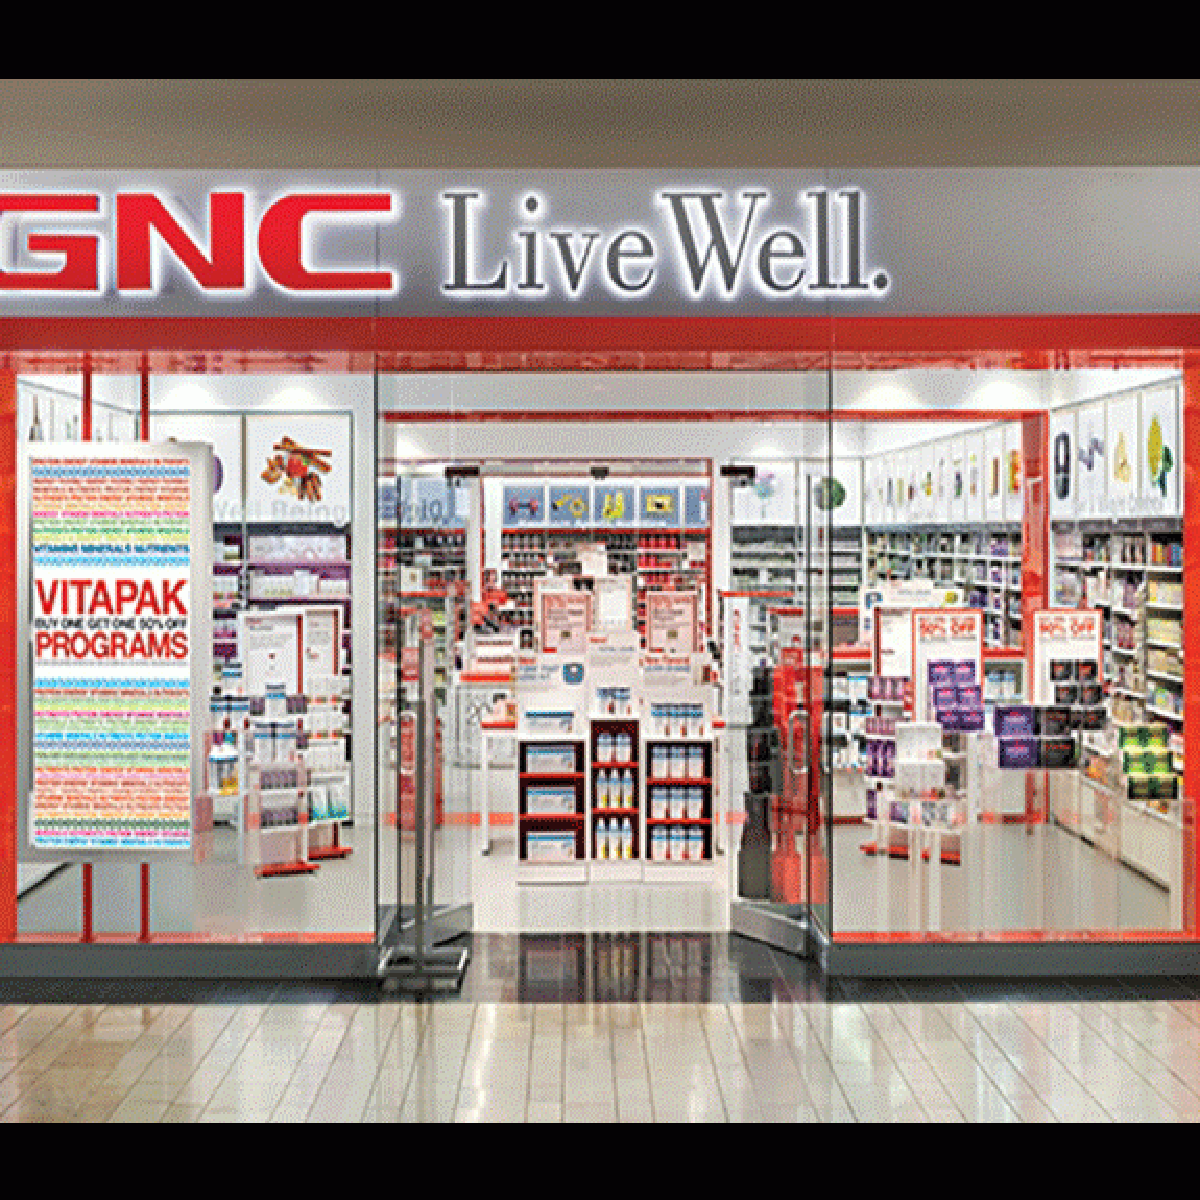 Gnc Going Out Of Business 2020.Gnc Said It Could Close 700 To 900 Stores By End Of 2020